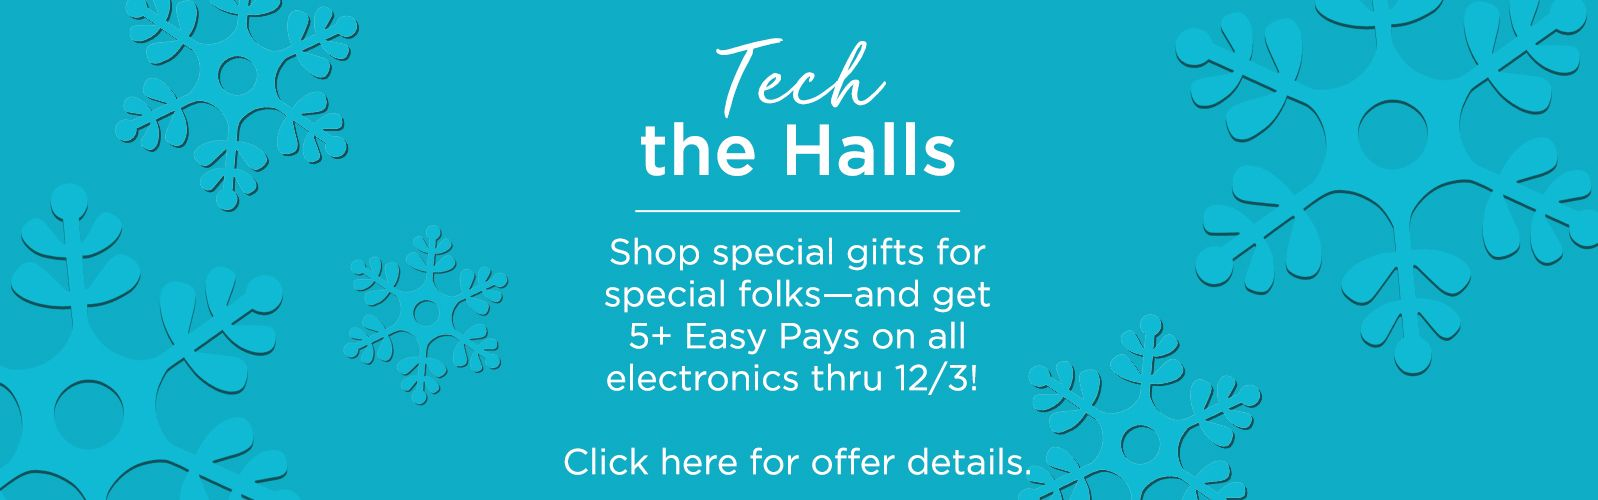 Top 10 tech gifts for christmas 2019 scrapbook